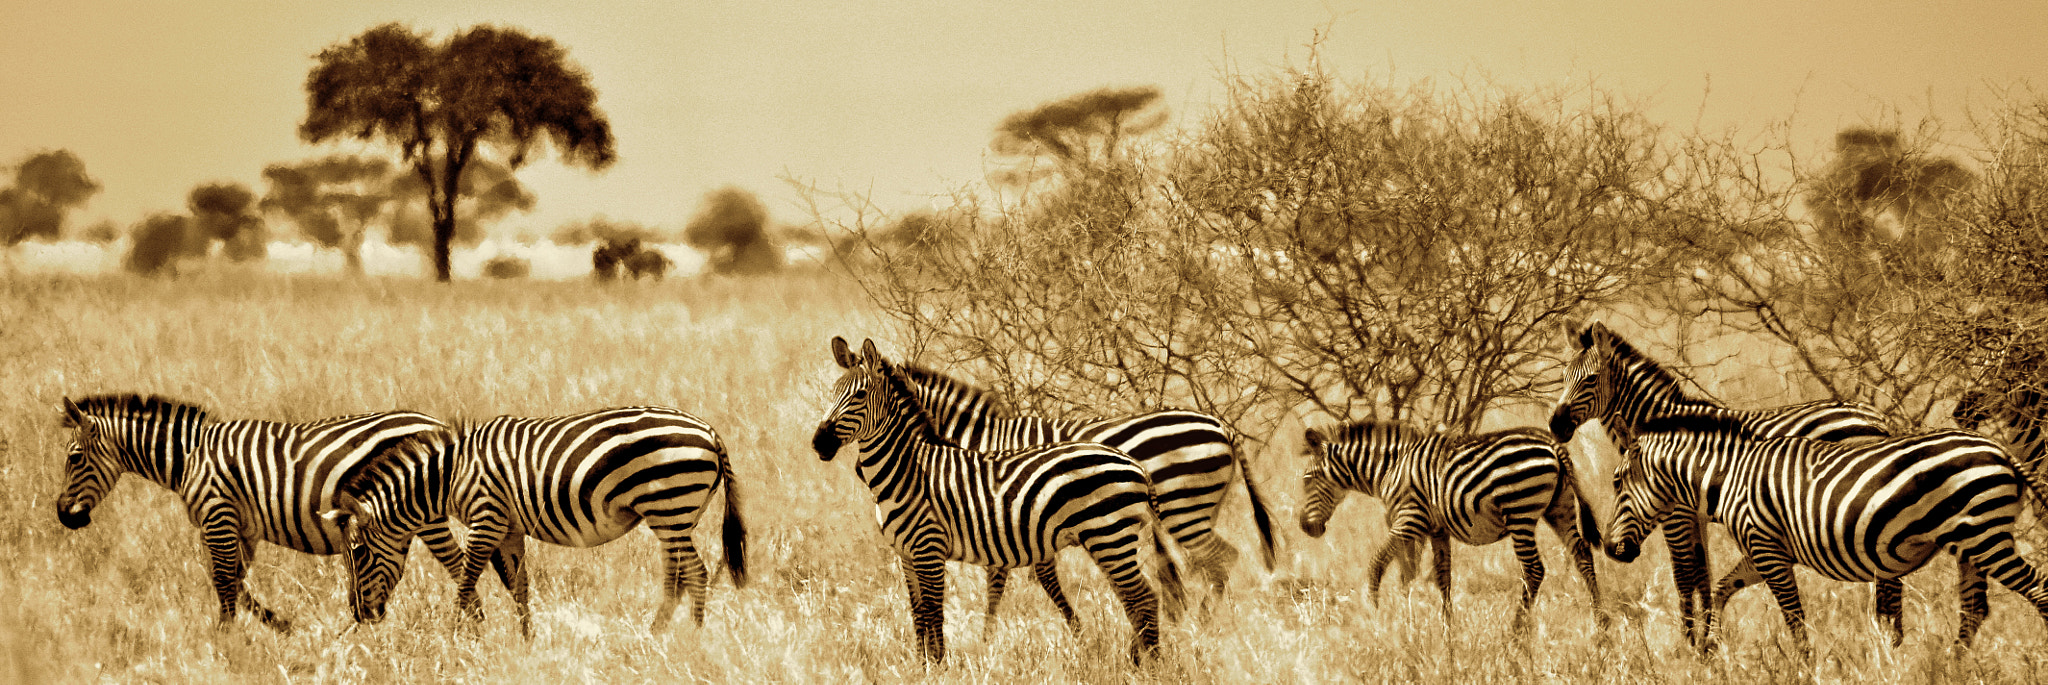 Photograph Zebras in Tanzania by Rick Bowers on 500px